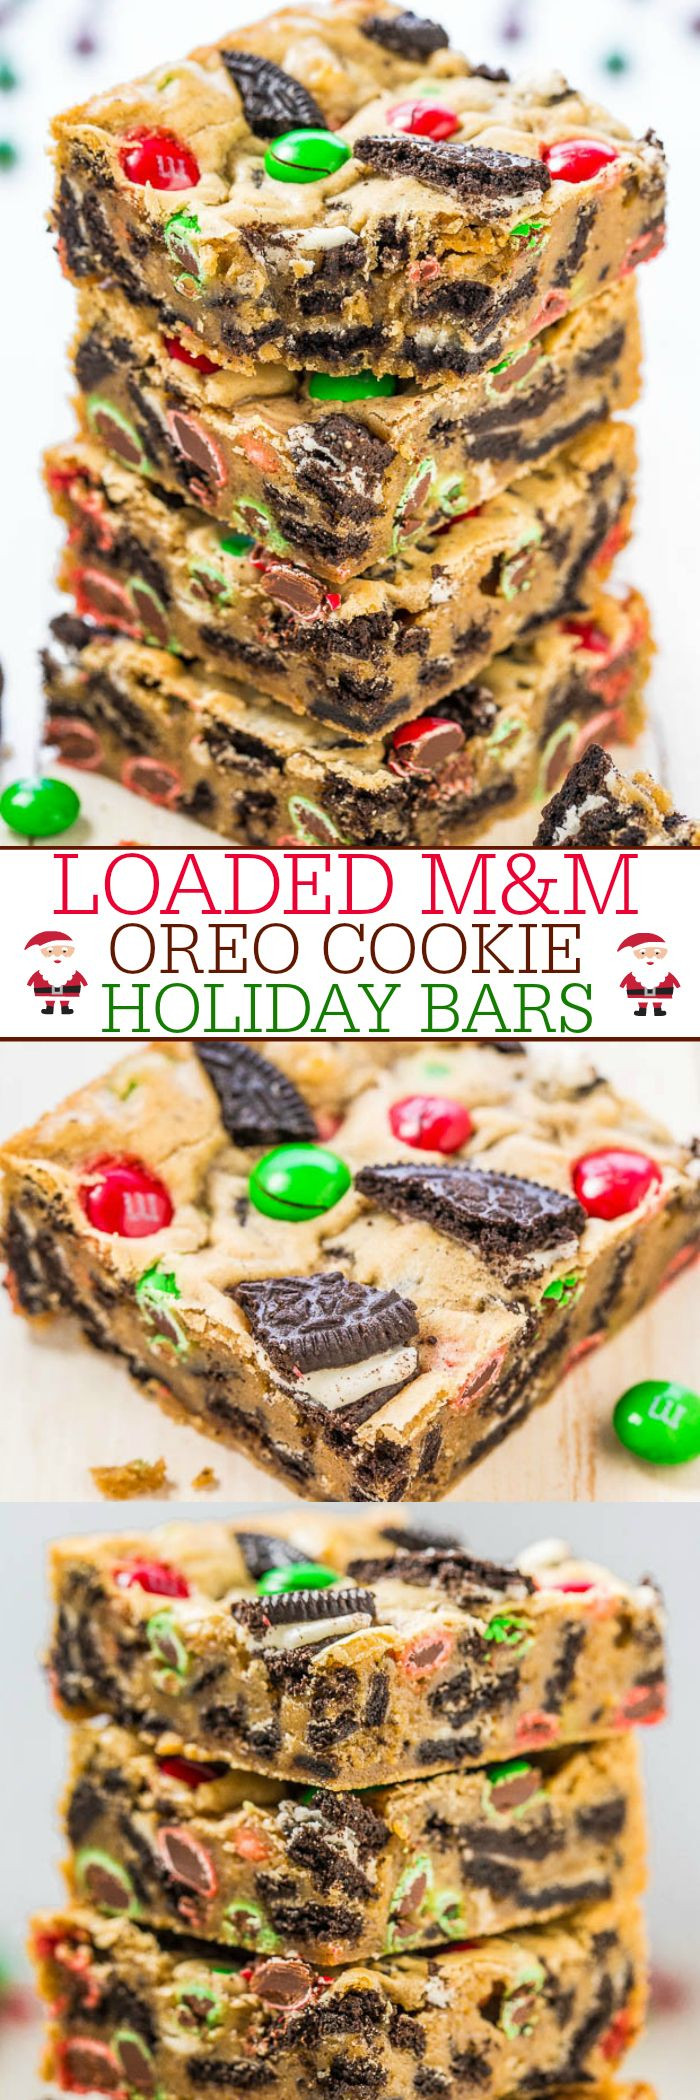 M&M Christmas Cookies Recipe  Loaded M&M Oreo Cookie Holiday Bars Recipe